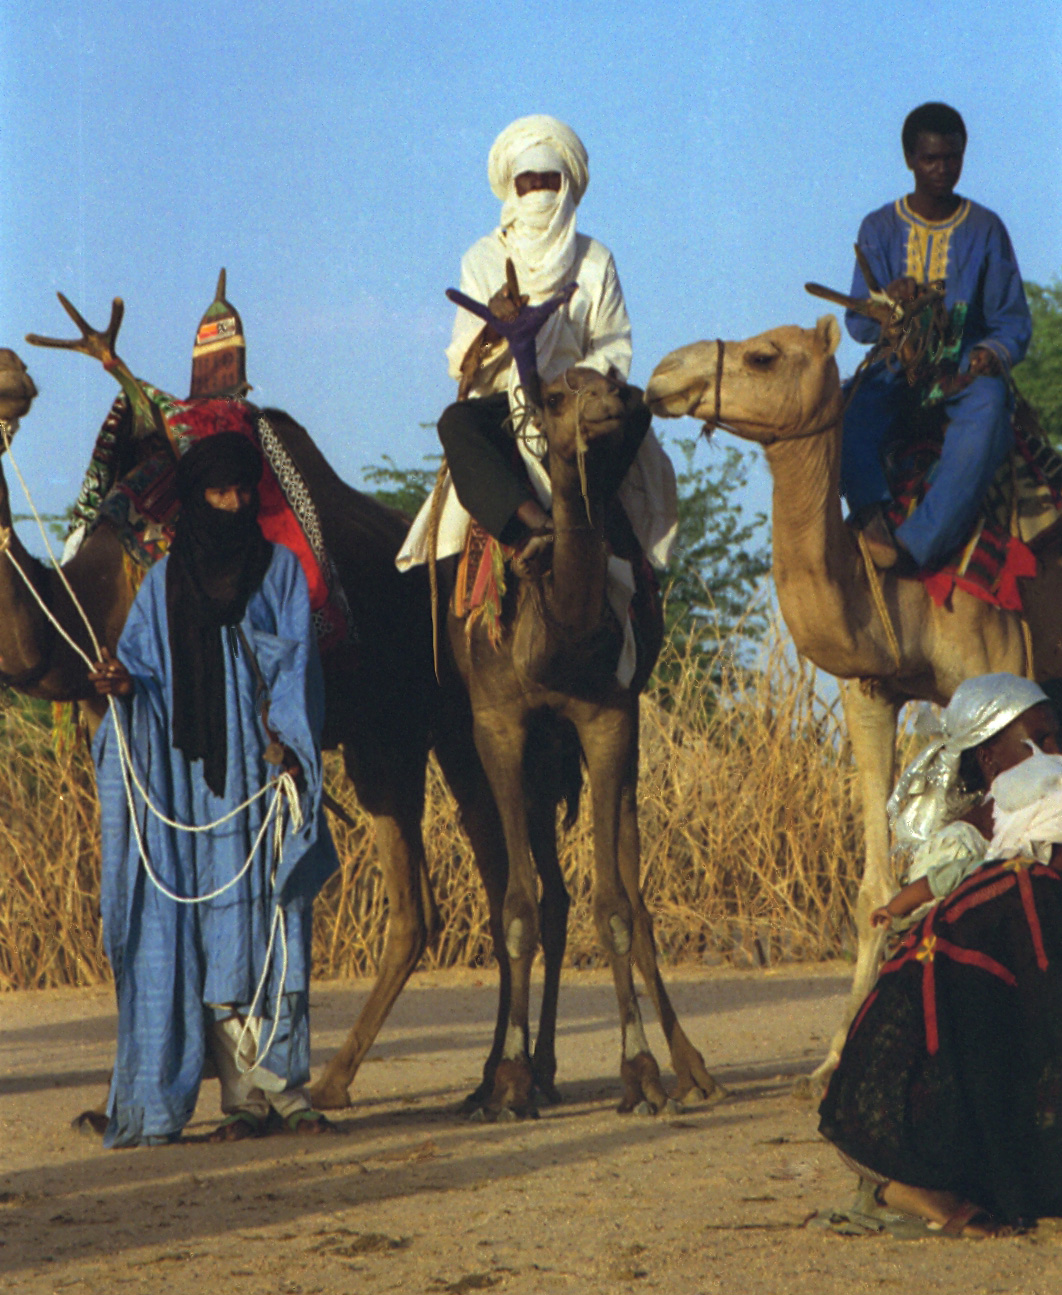 Tuareg men. Niger 1997. Photo Credit: Dan Lundberg